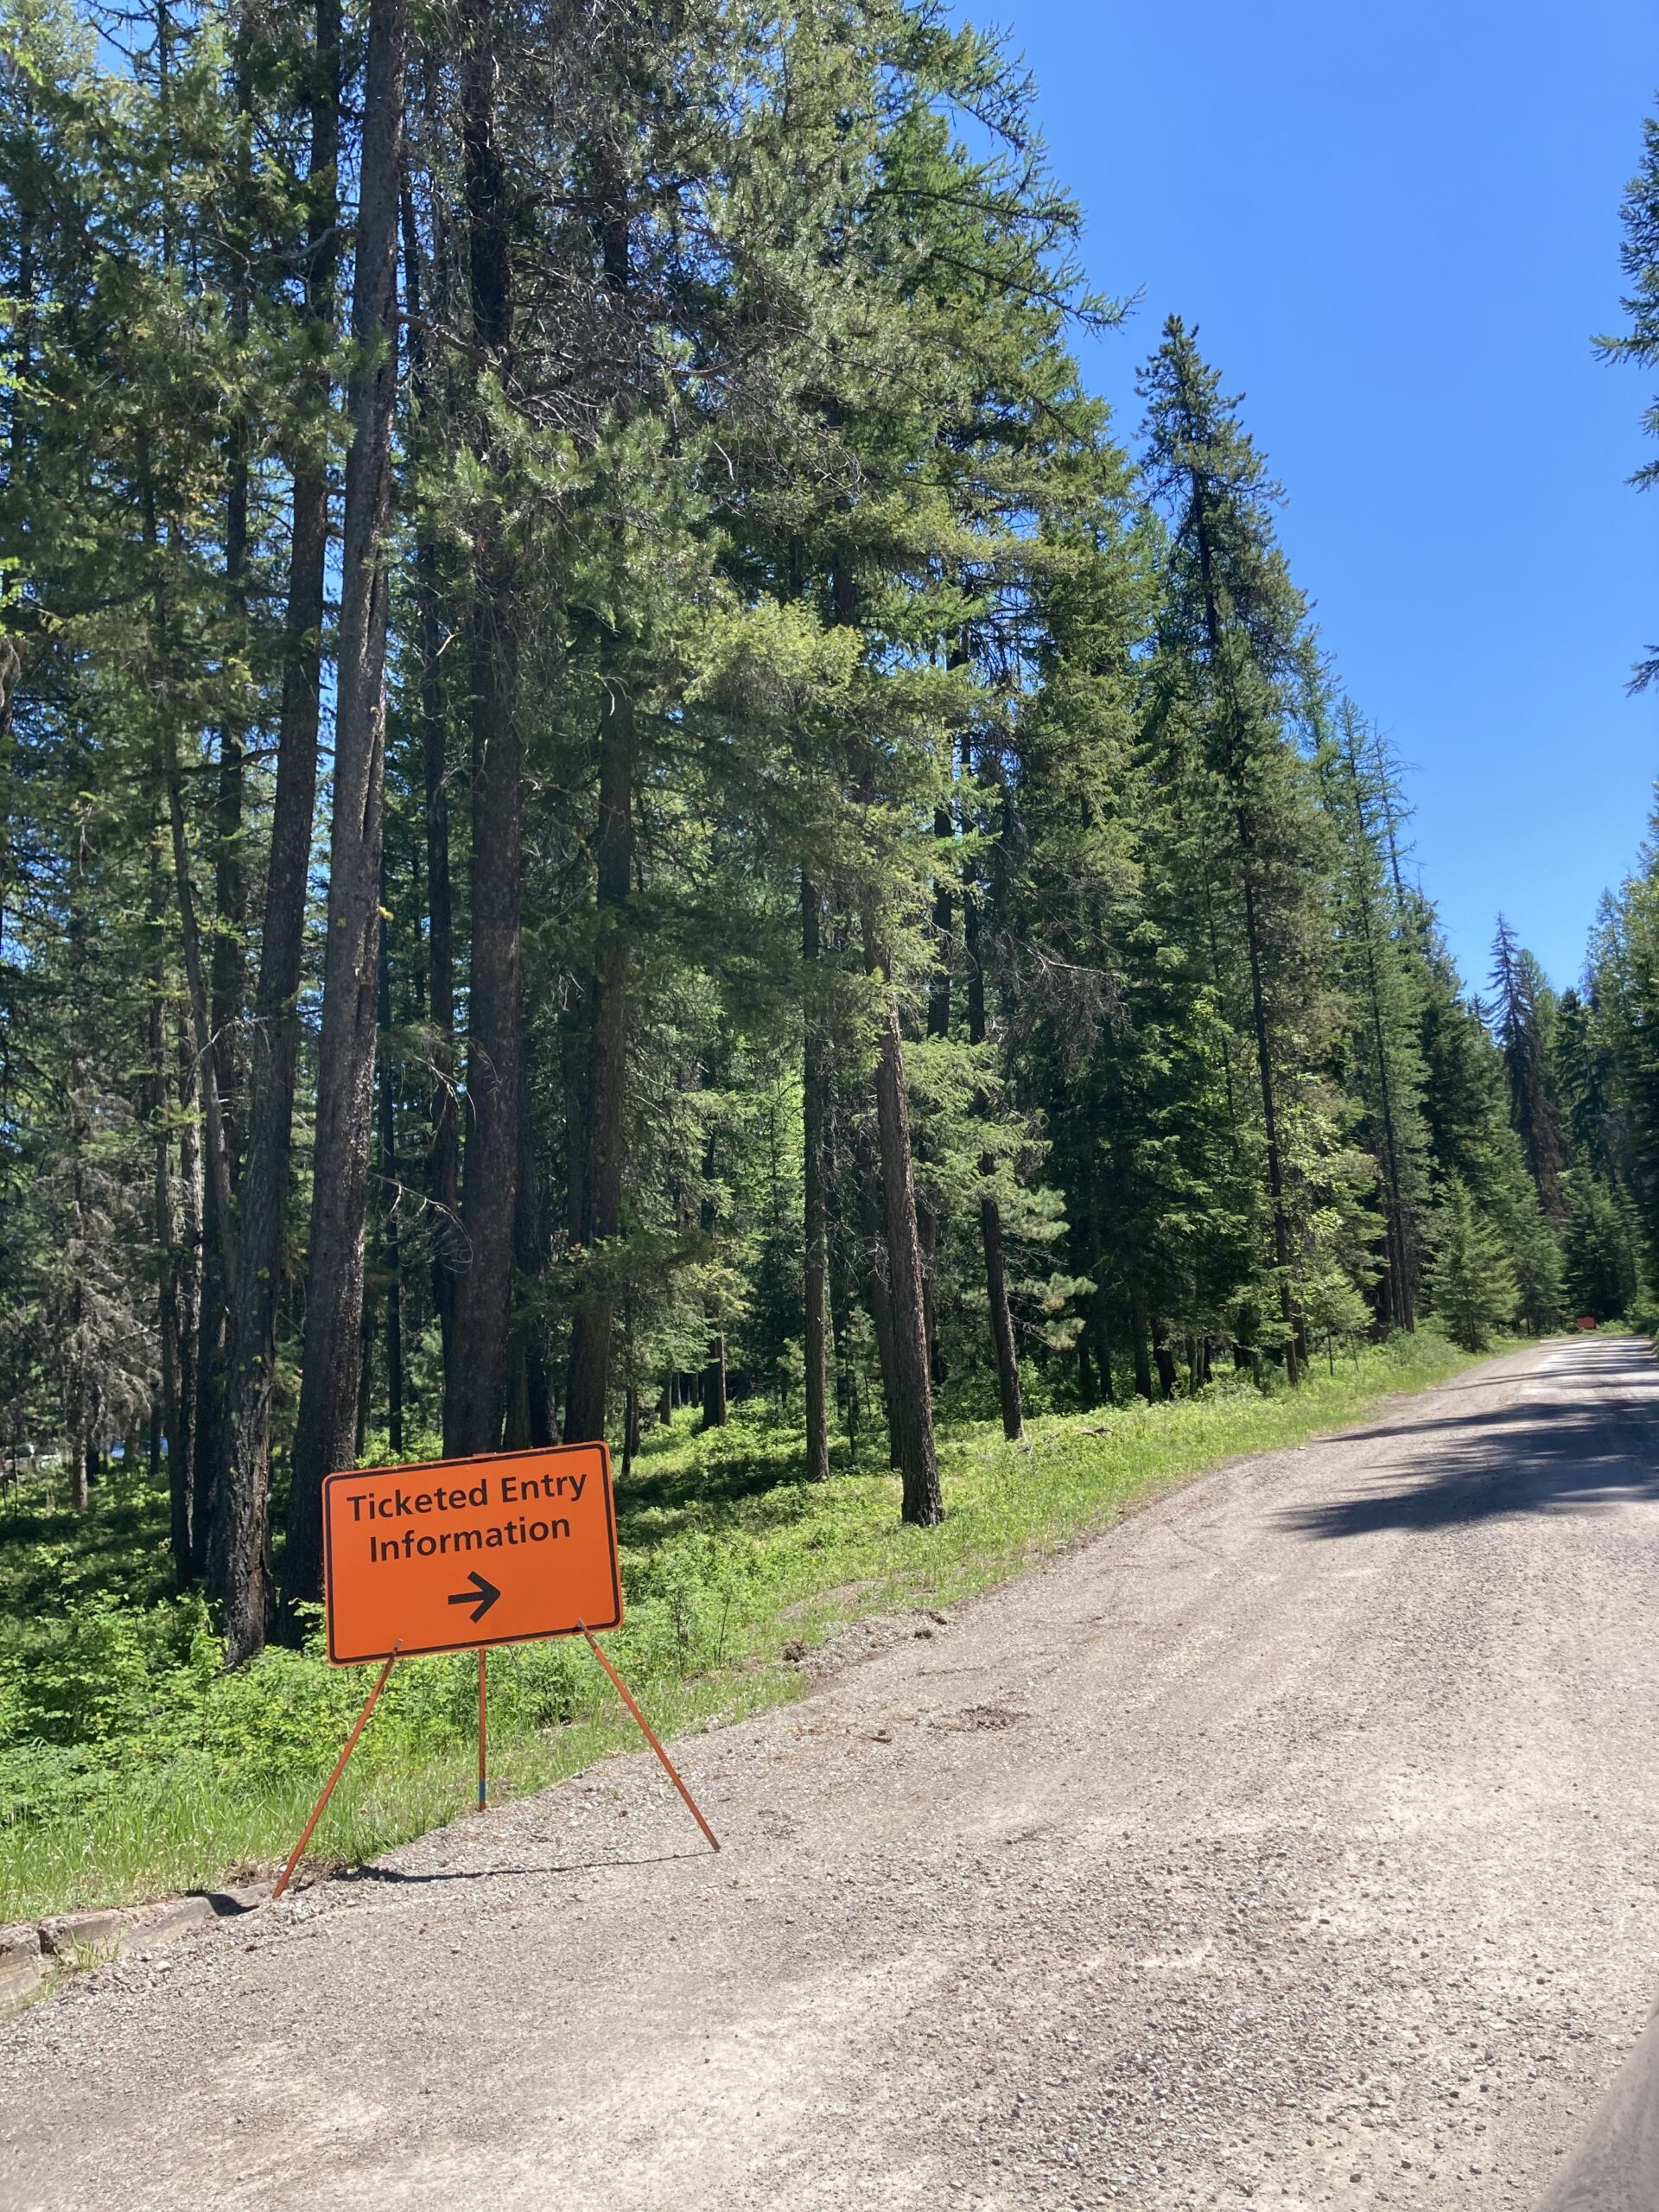 National parks refine ticketed-entry systems to manage visitor boom